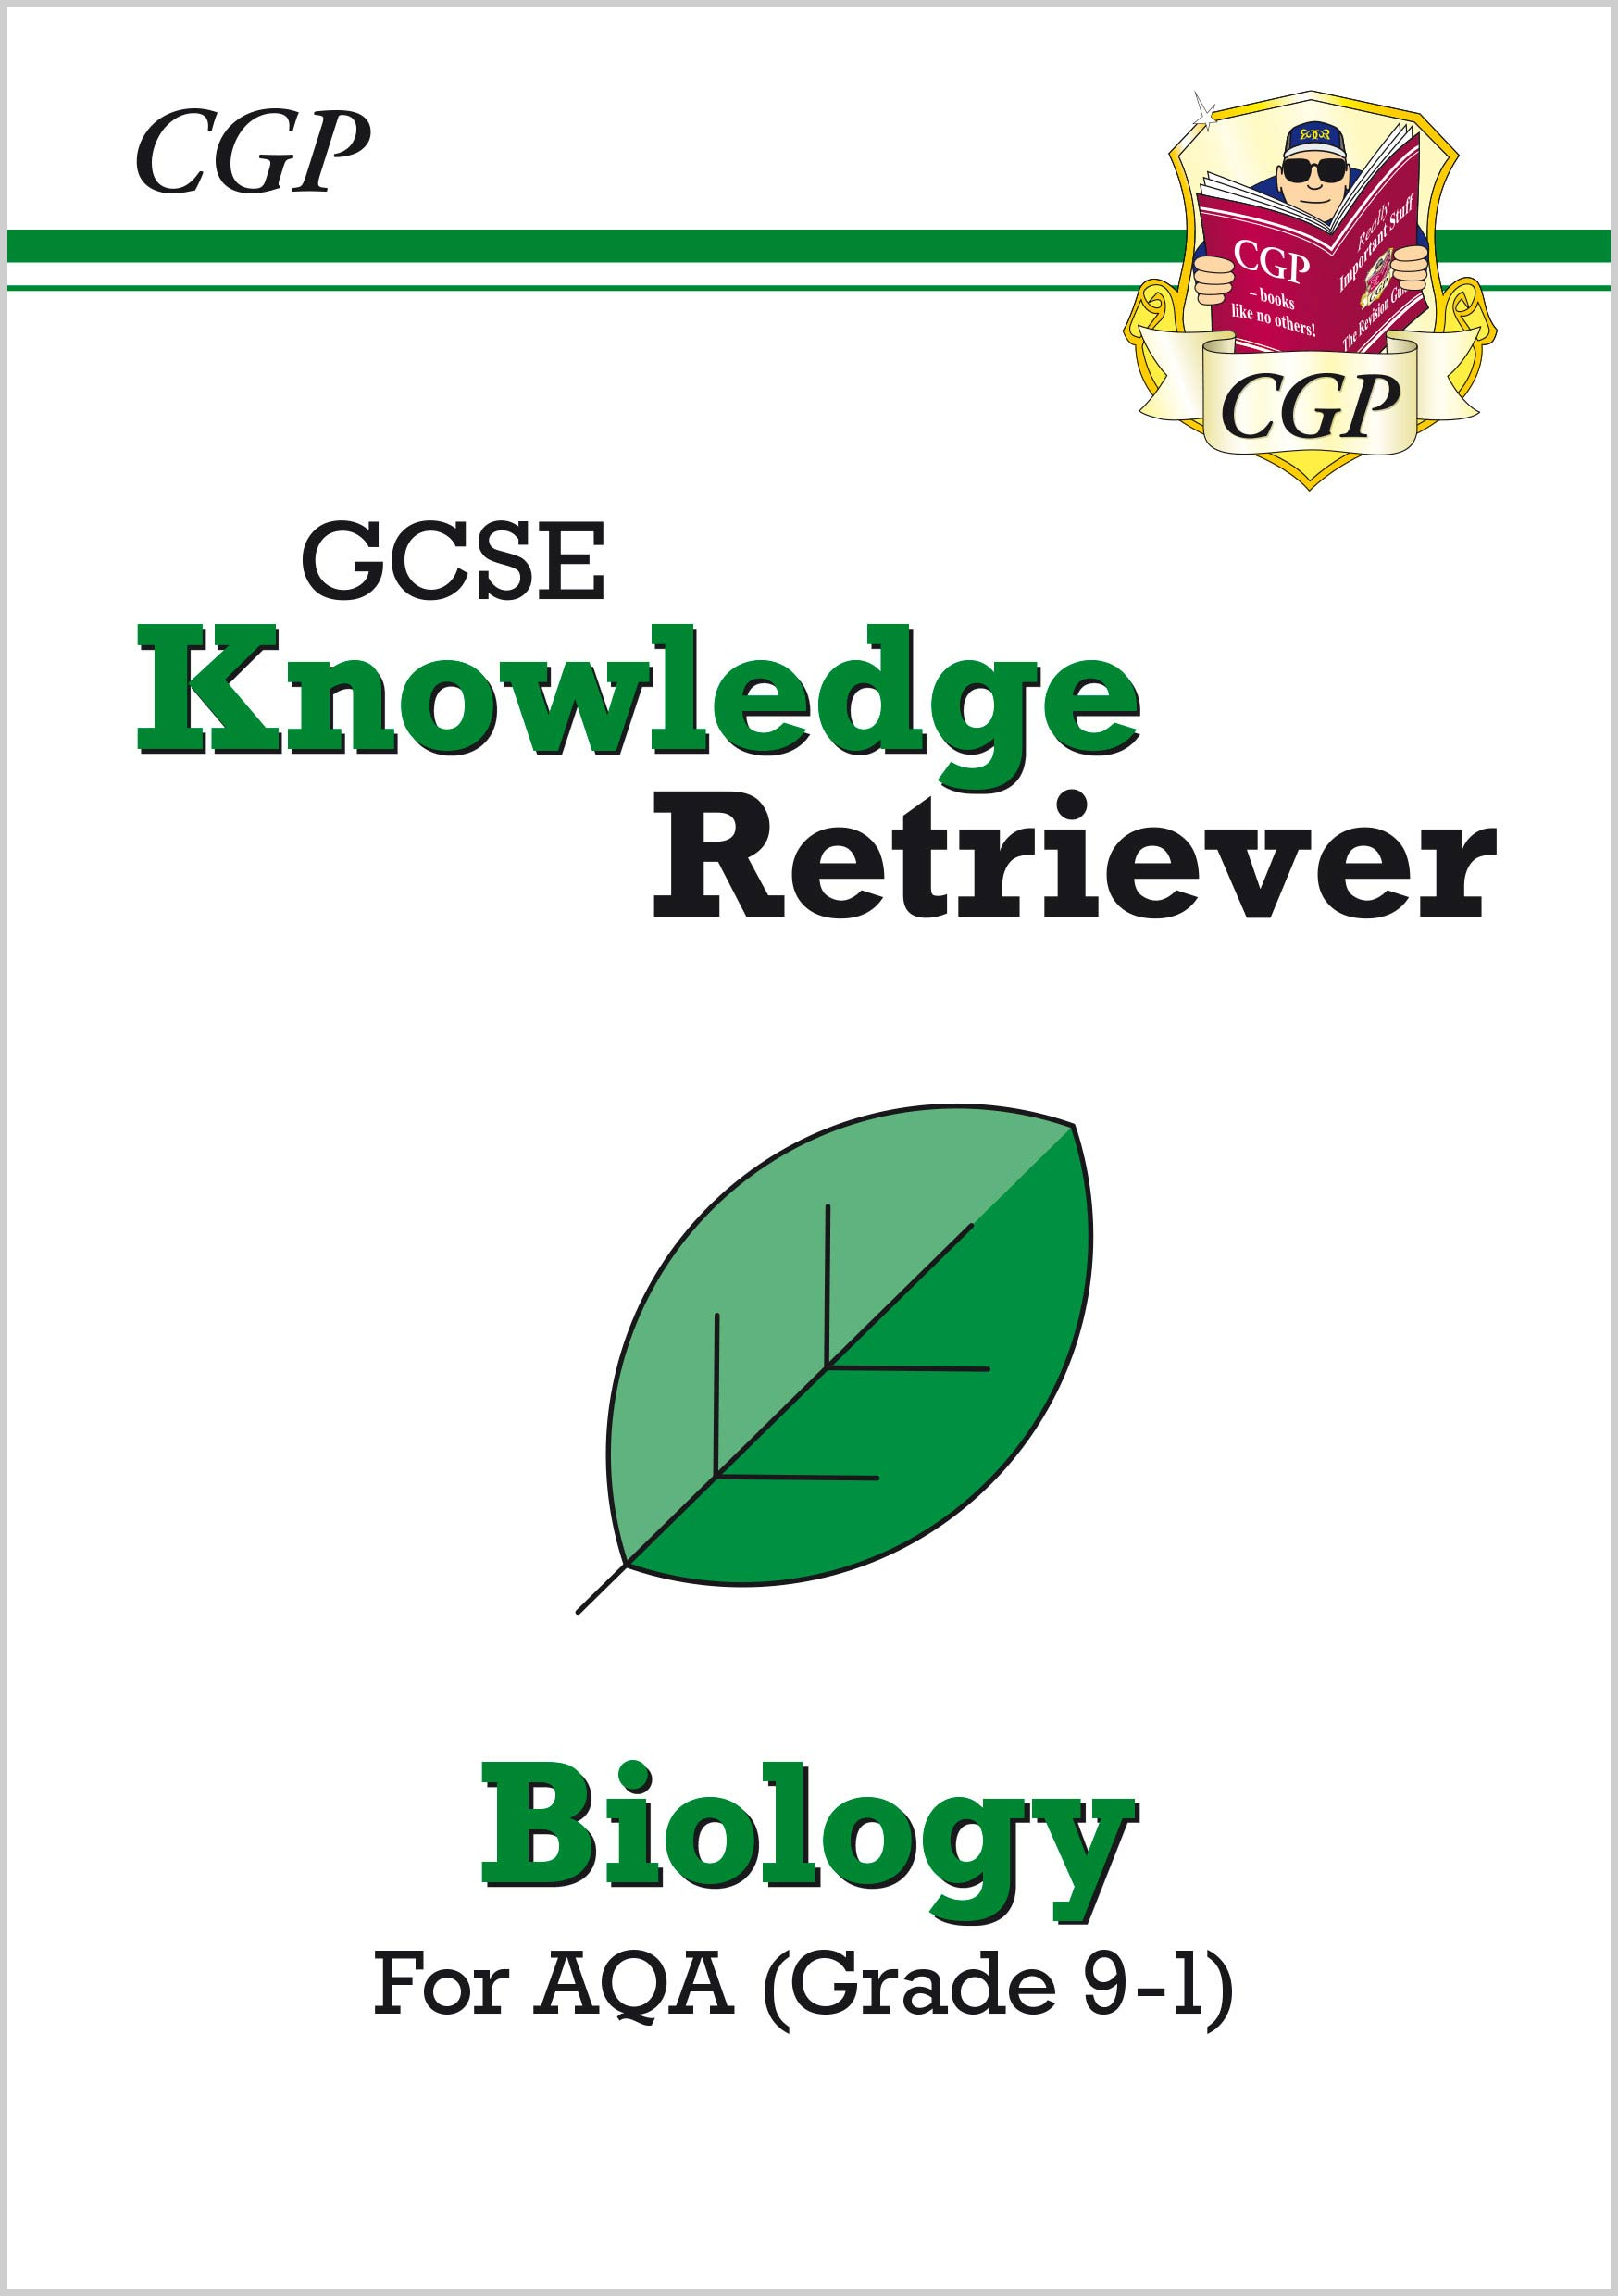 BANR41 - New GCSE Knowledge Retriever: AQA Biology (Grade 9-1)